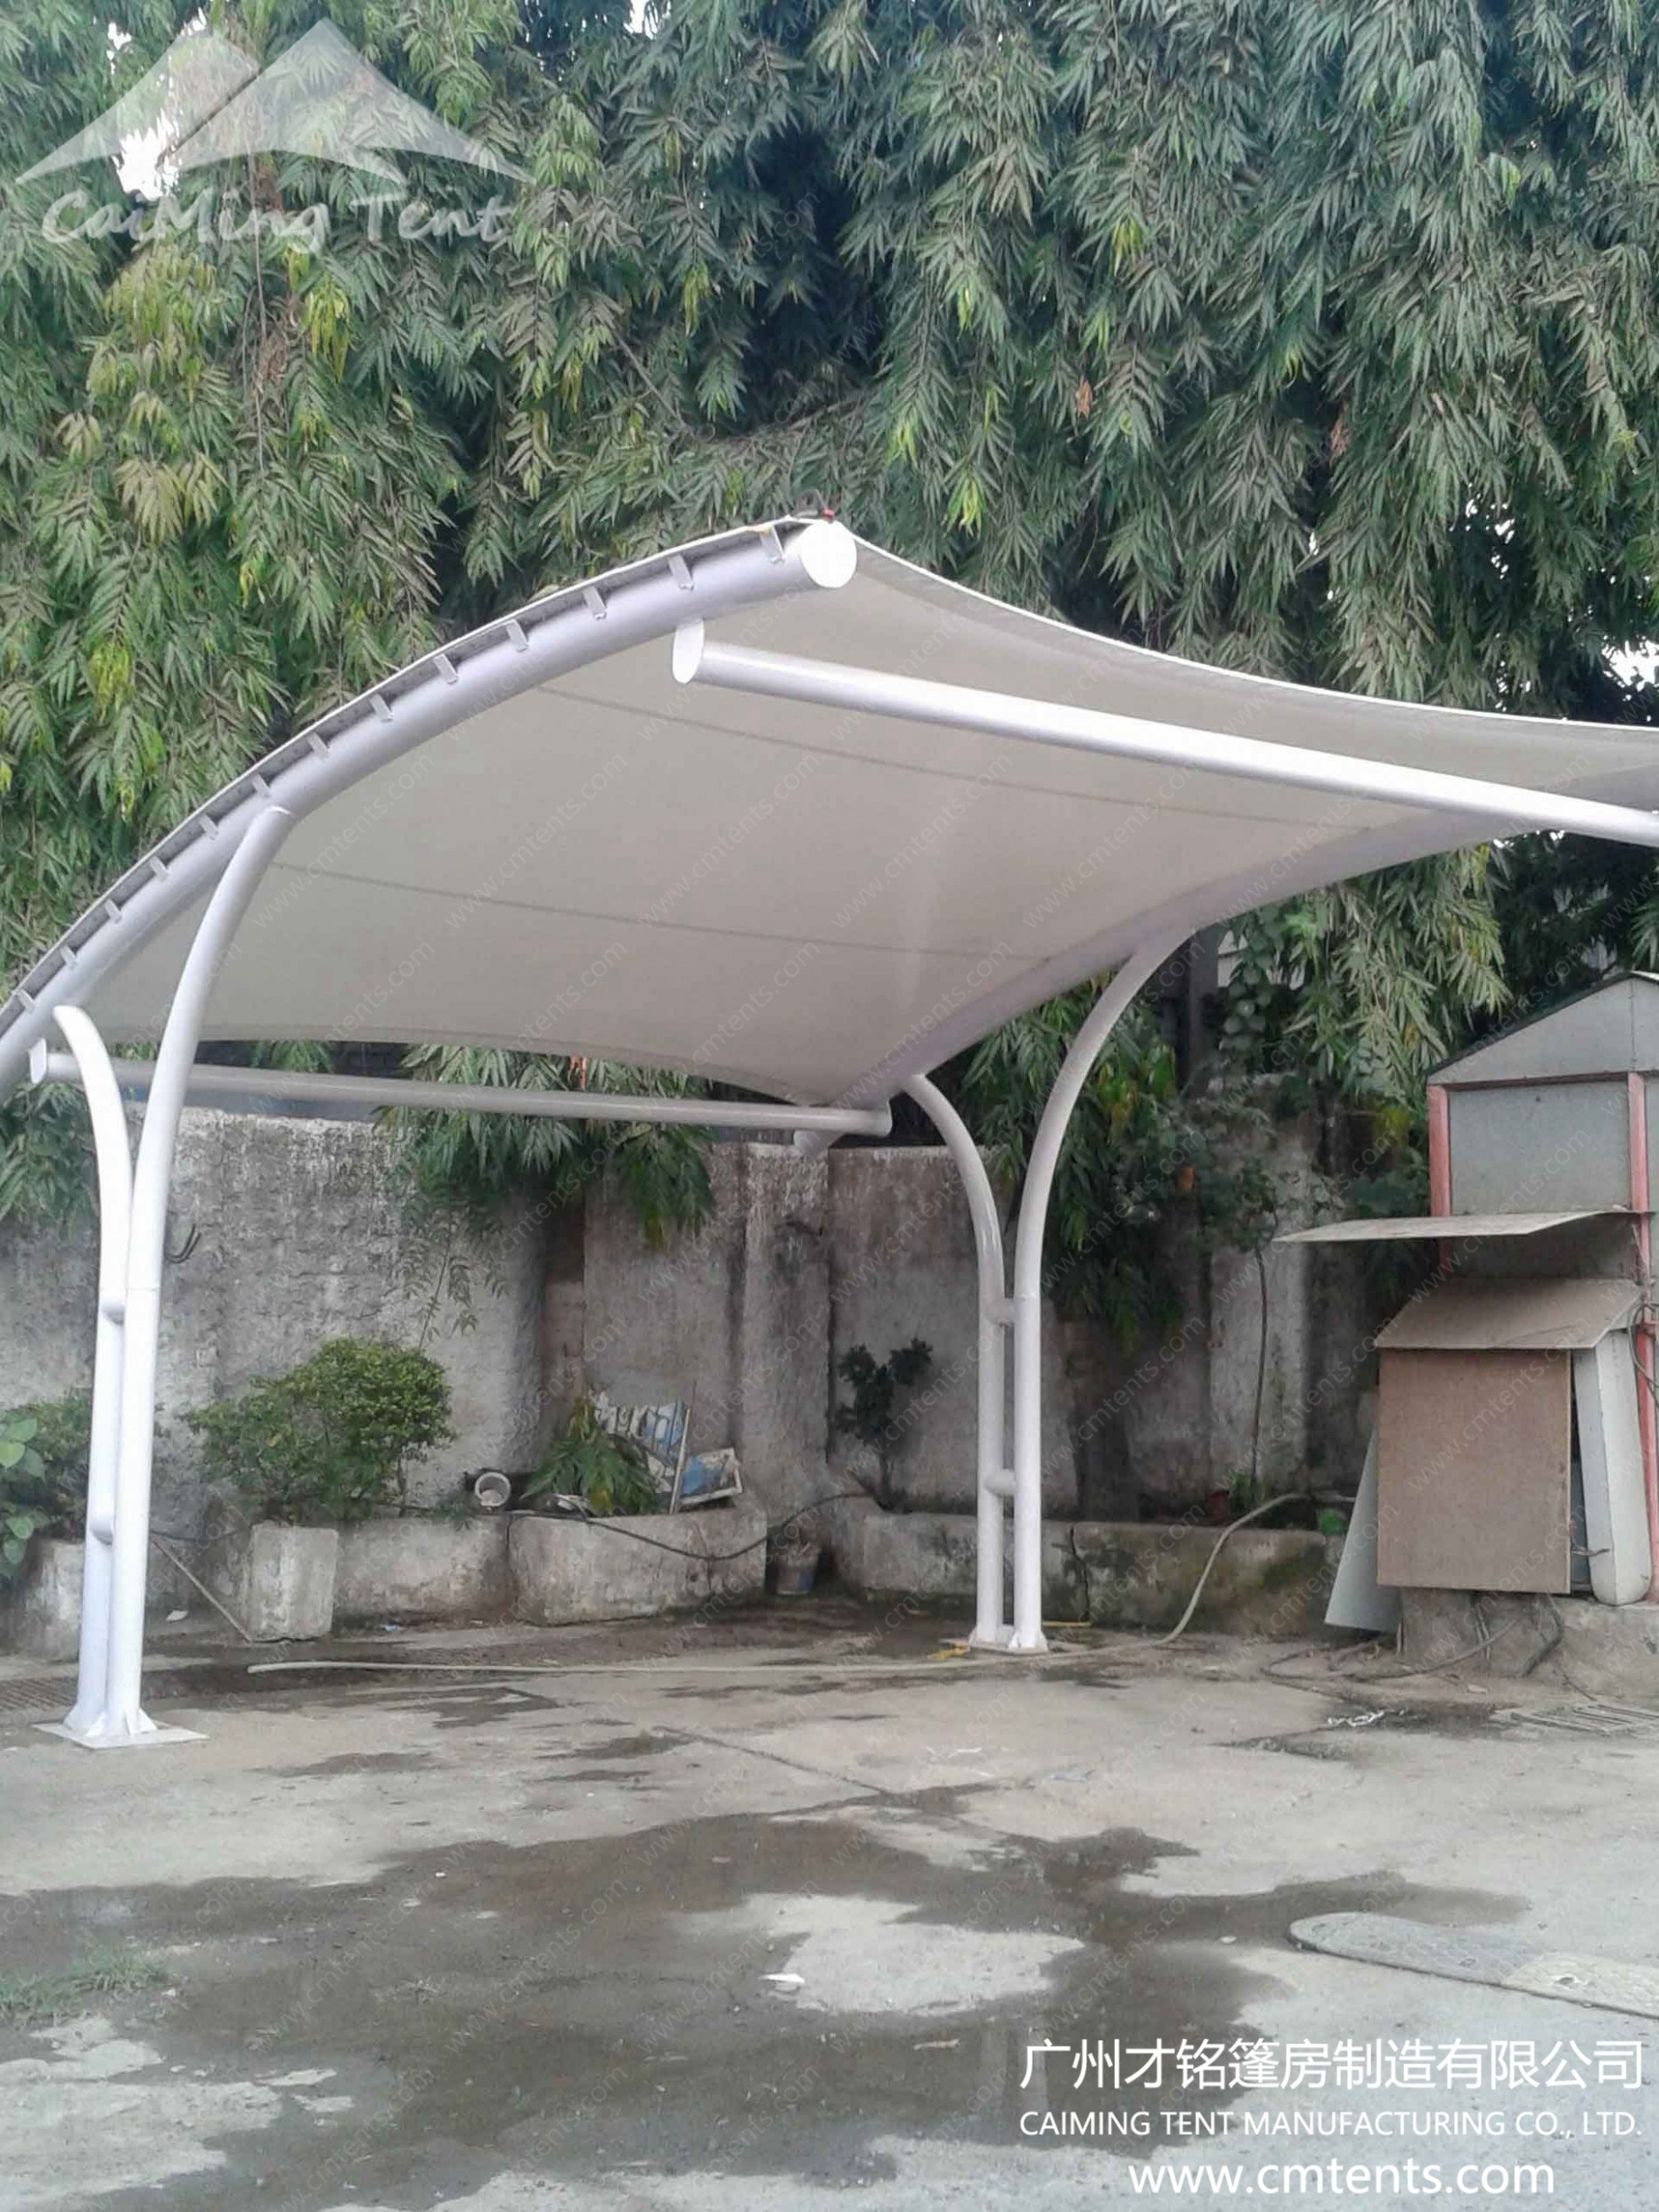 10 Fantastic Vacation Ideas For Portable Carports For Sale | portable carports for sale